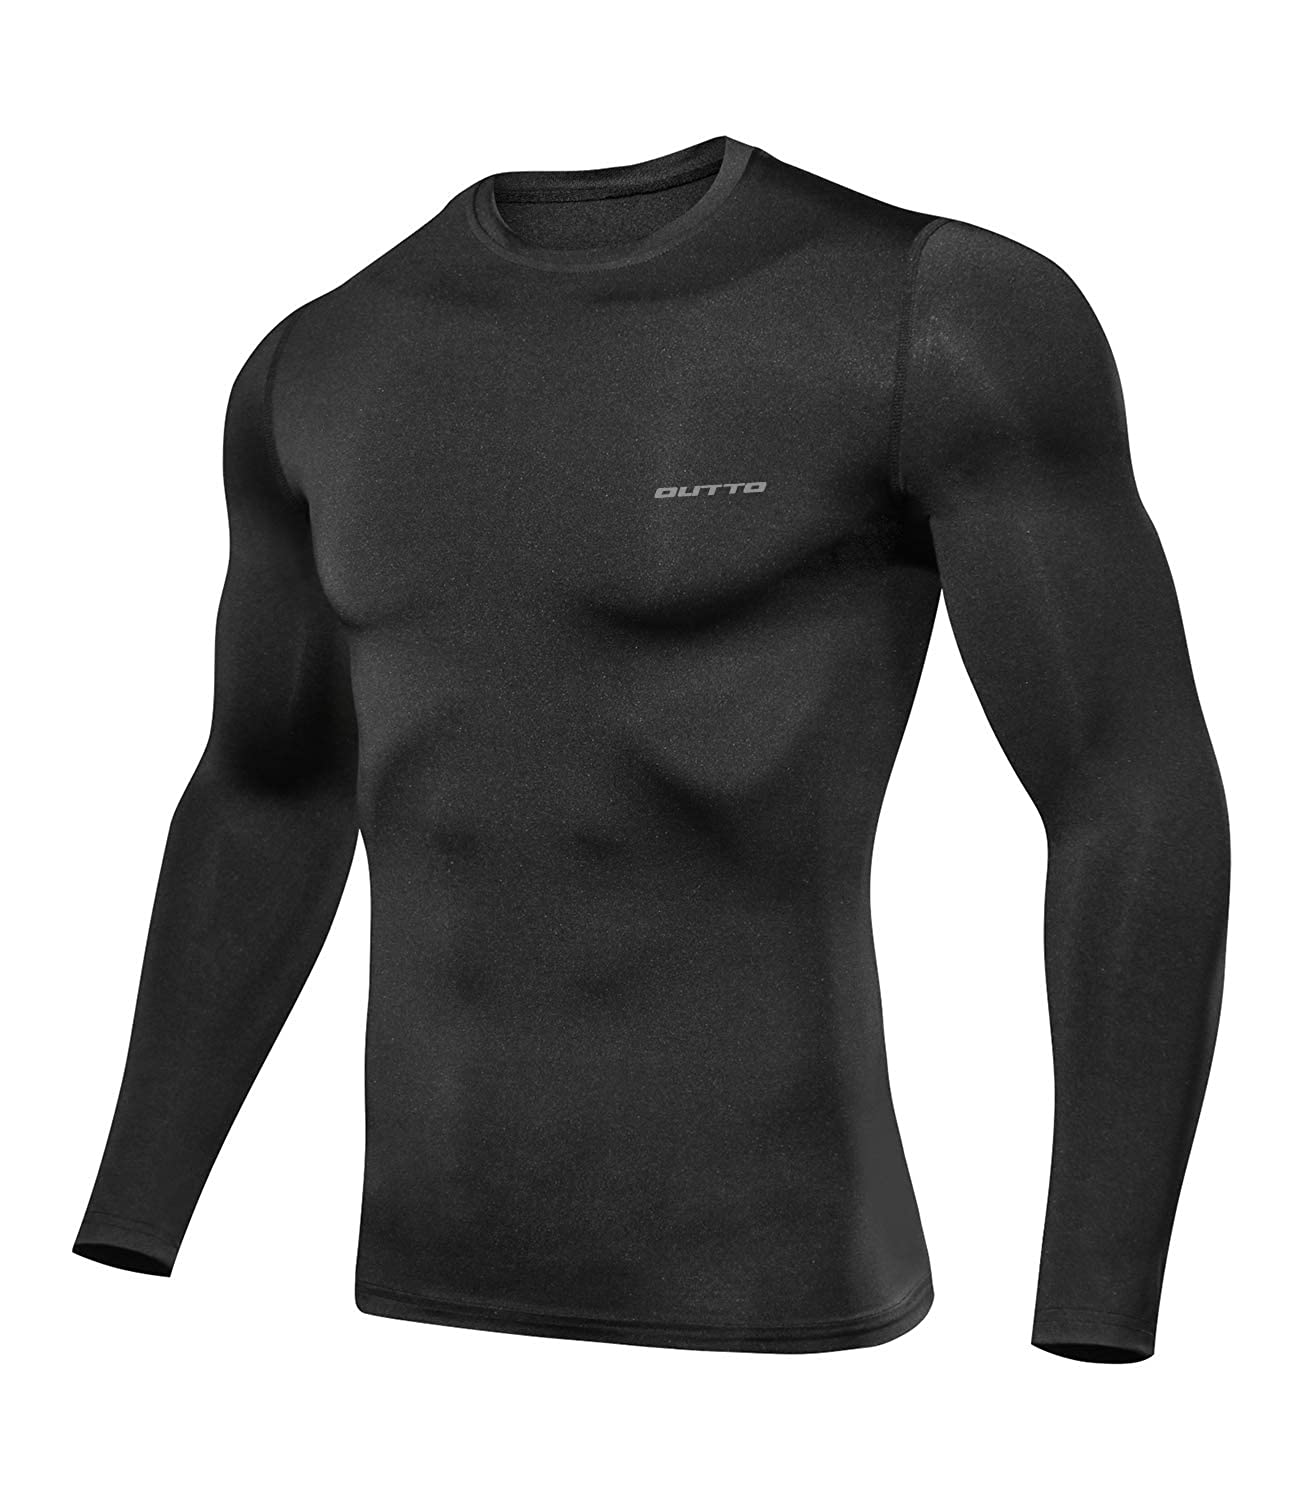 L119a Black XLarge Outto Men's Long Sleeve TShirt Cool Dry Compression Base Layer for Sports